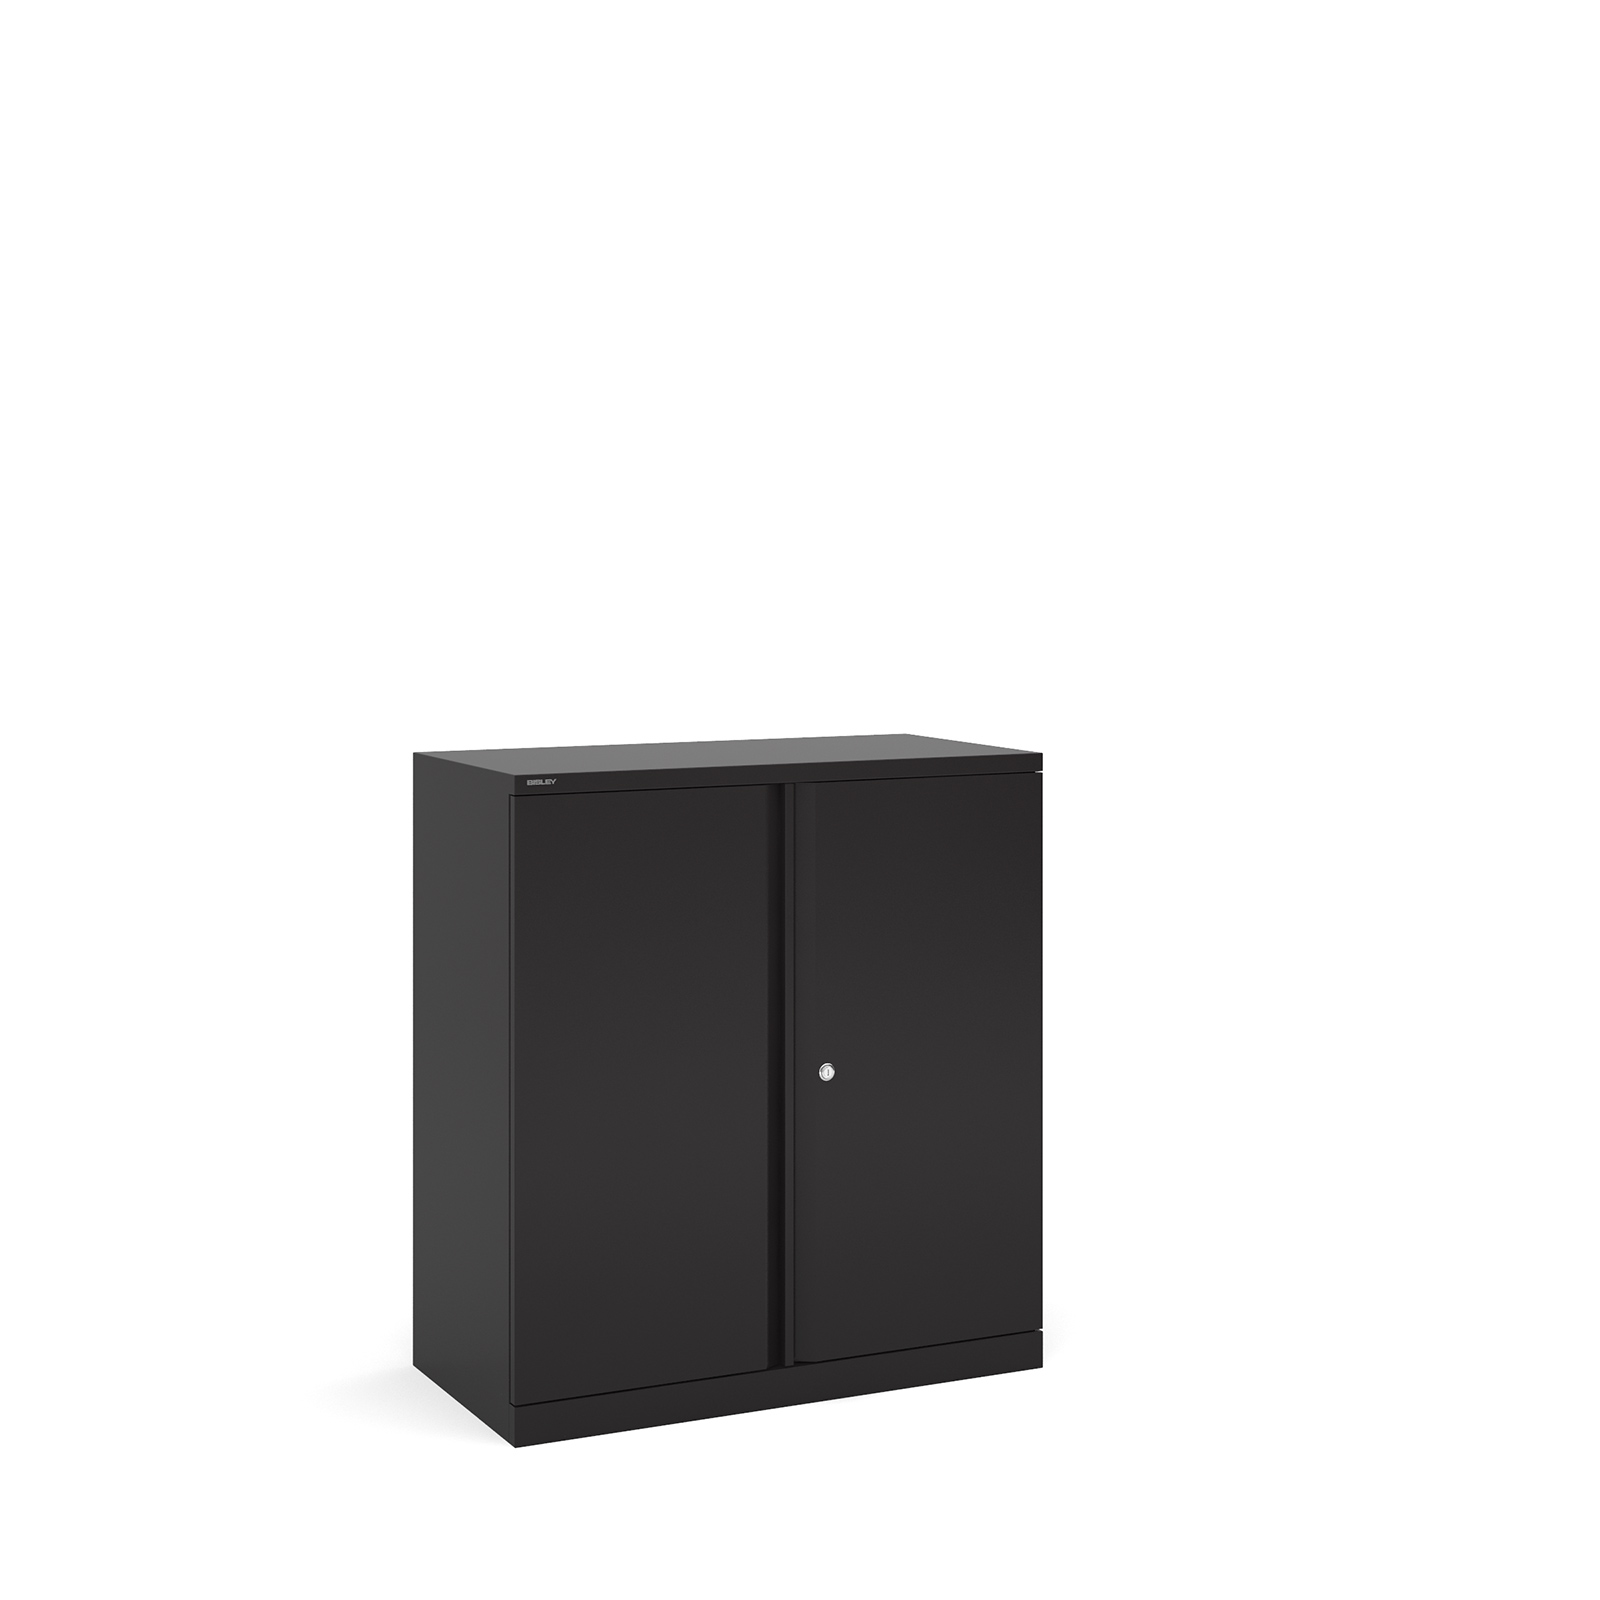 Bisley systems storage low cupboard 1000mm high - black